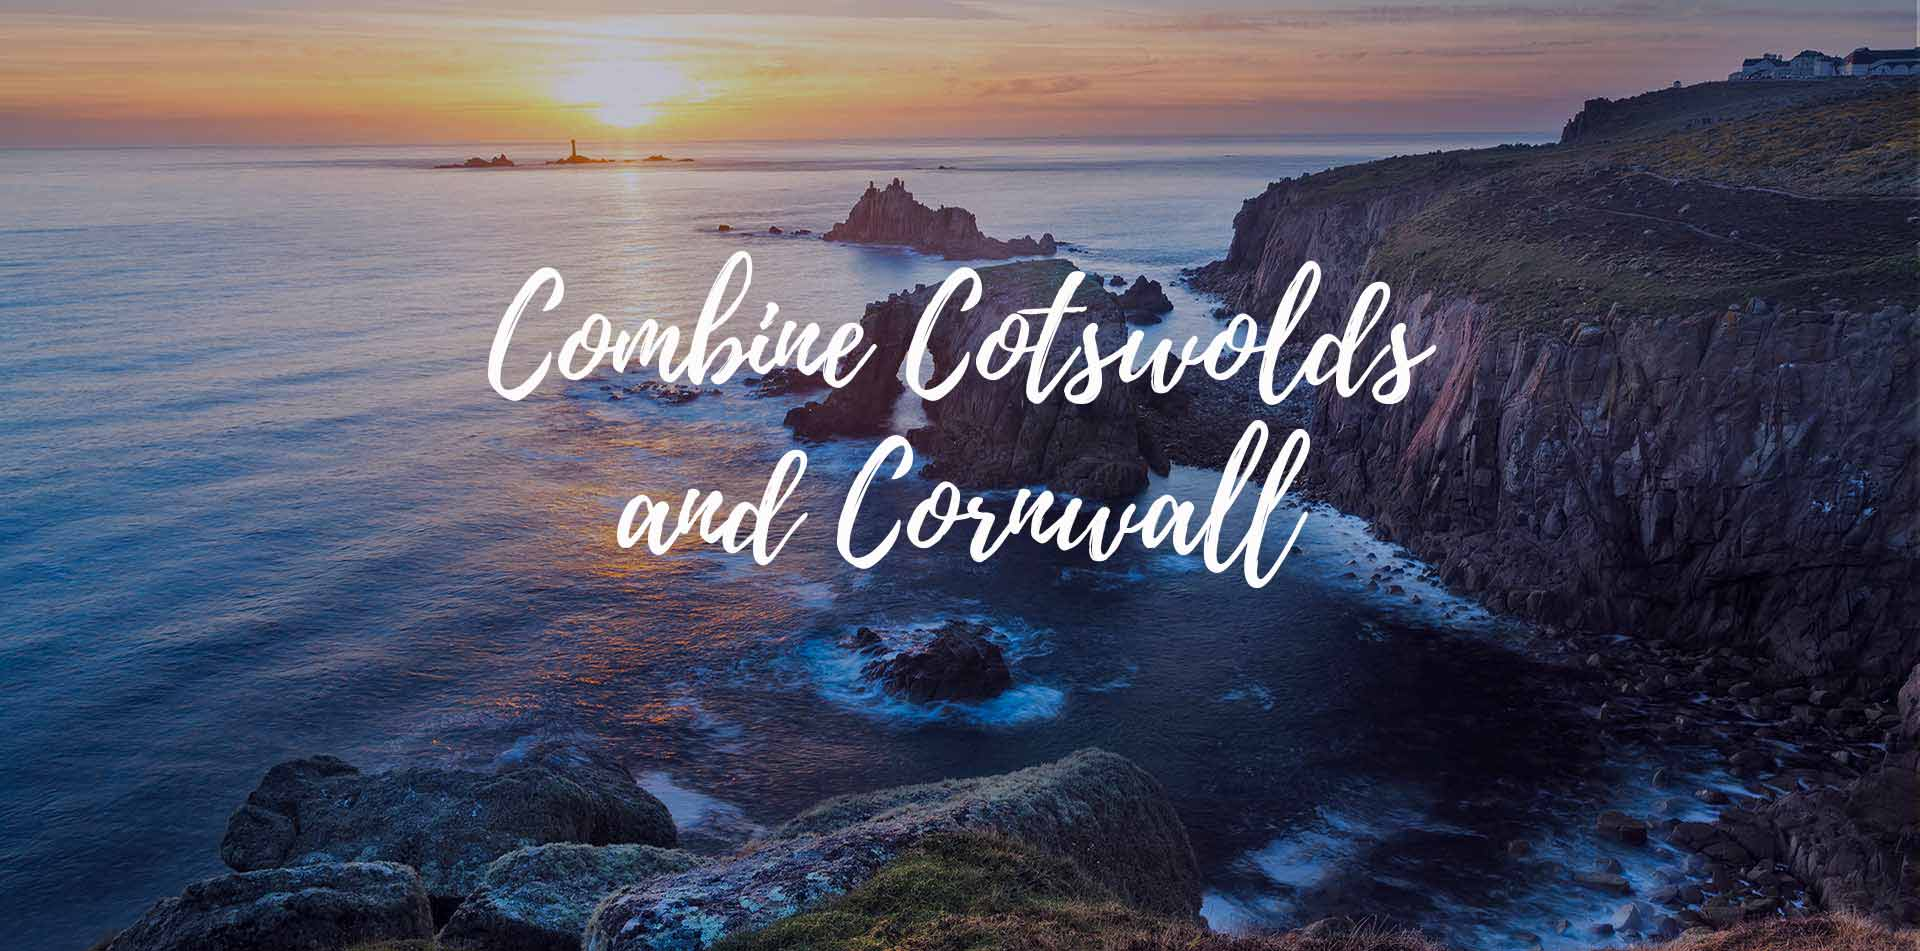 Europe England Combine Cotswolds and Cornwall beautiful coastal cliffs - luxury vacation destinations